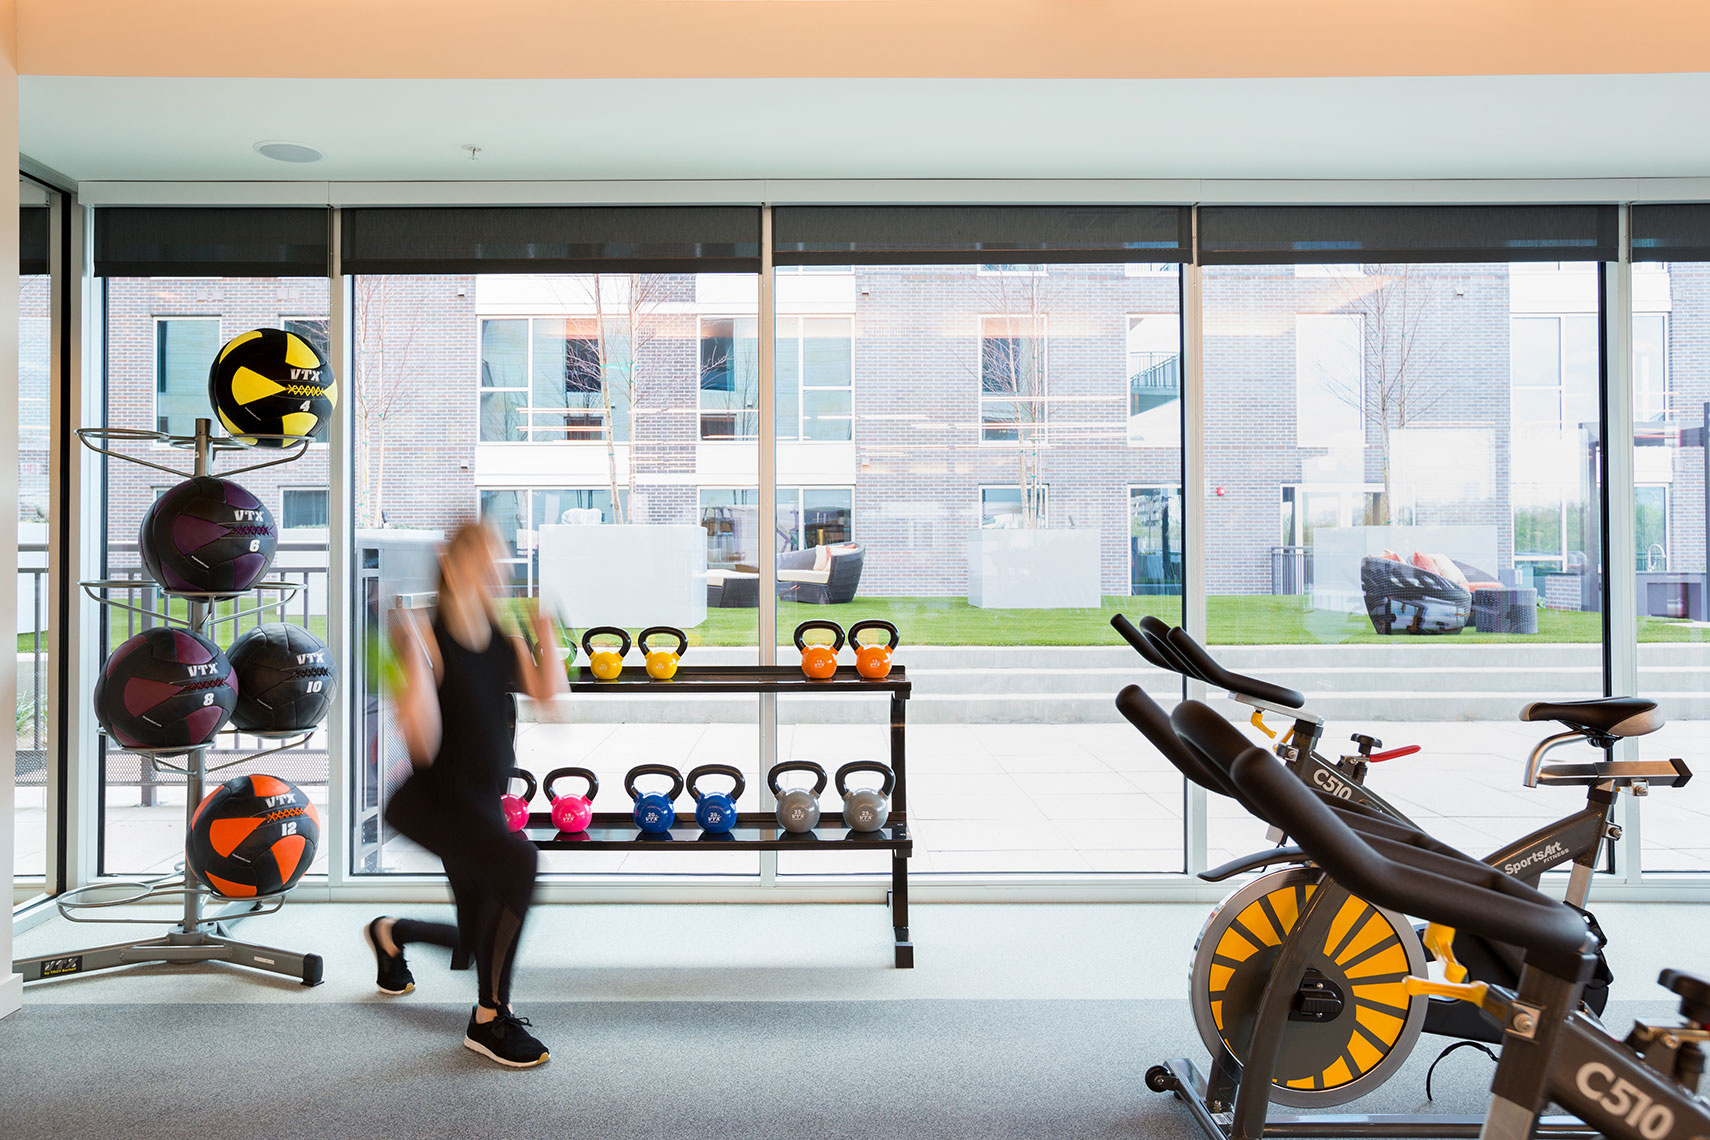 Gym at Kirby Heights a Midway Companies property. By  Houston Commercial Photographer Shannon O